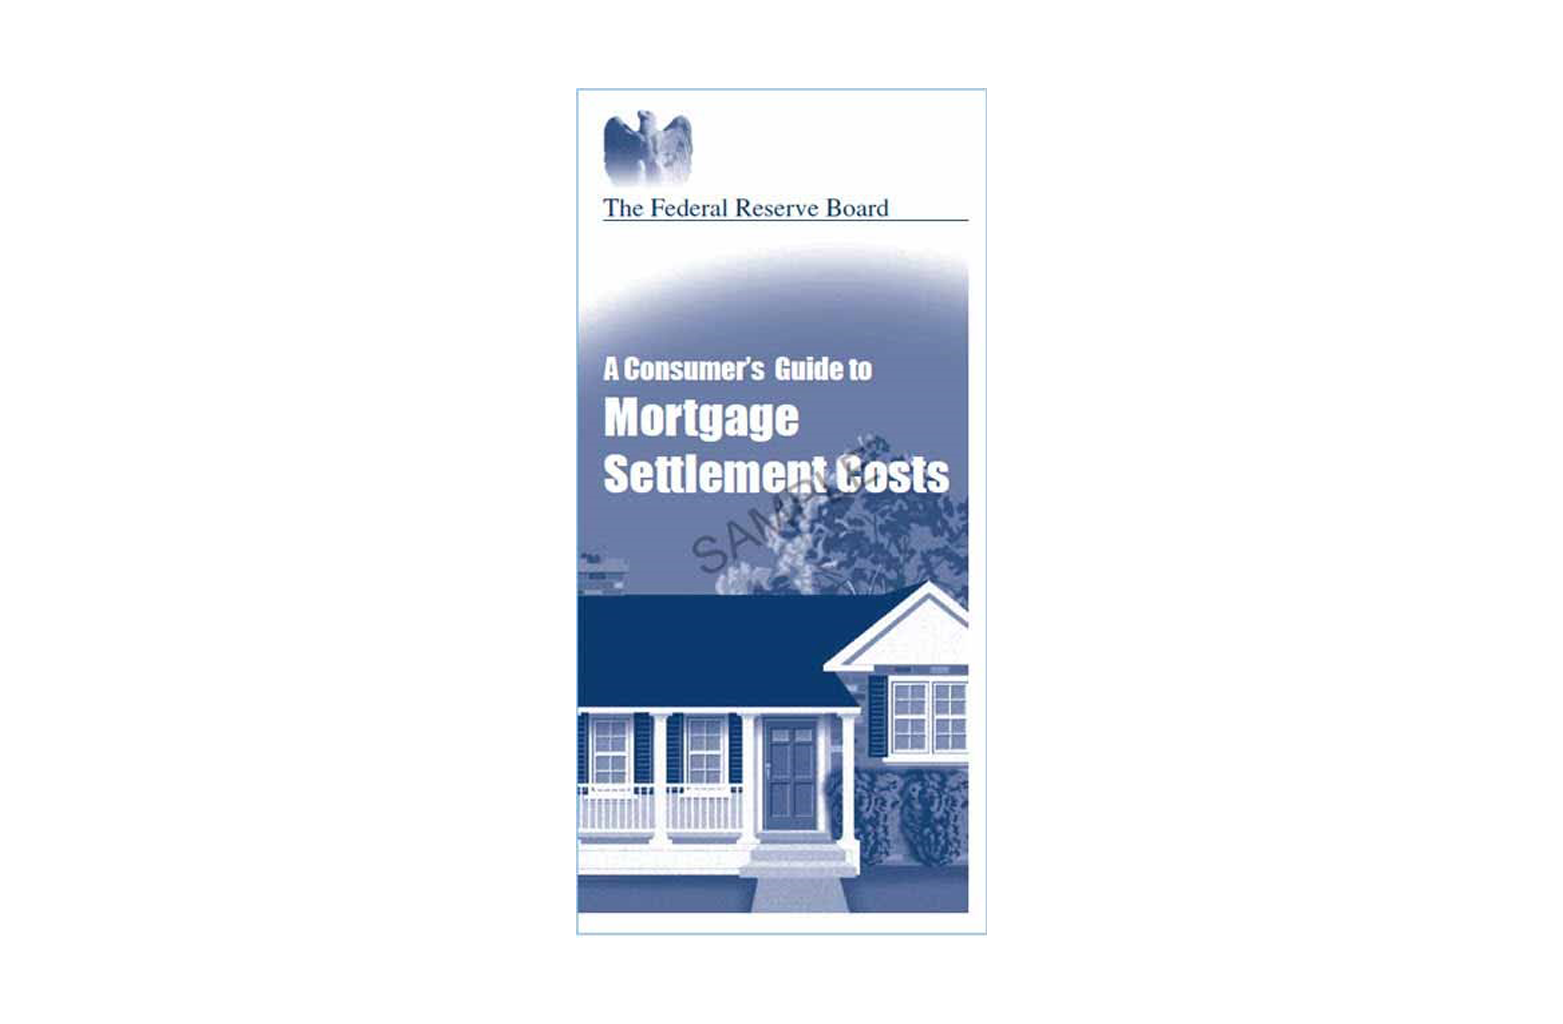 Consumers Guide to Mortgage Settlement